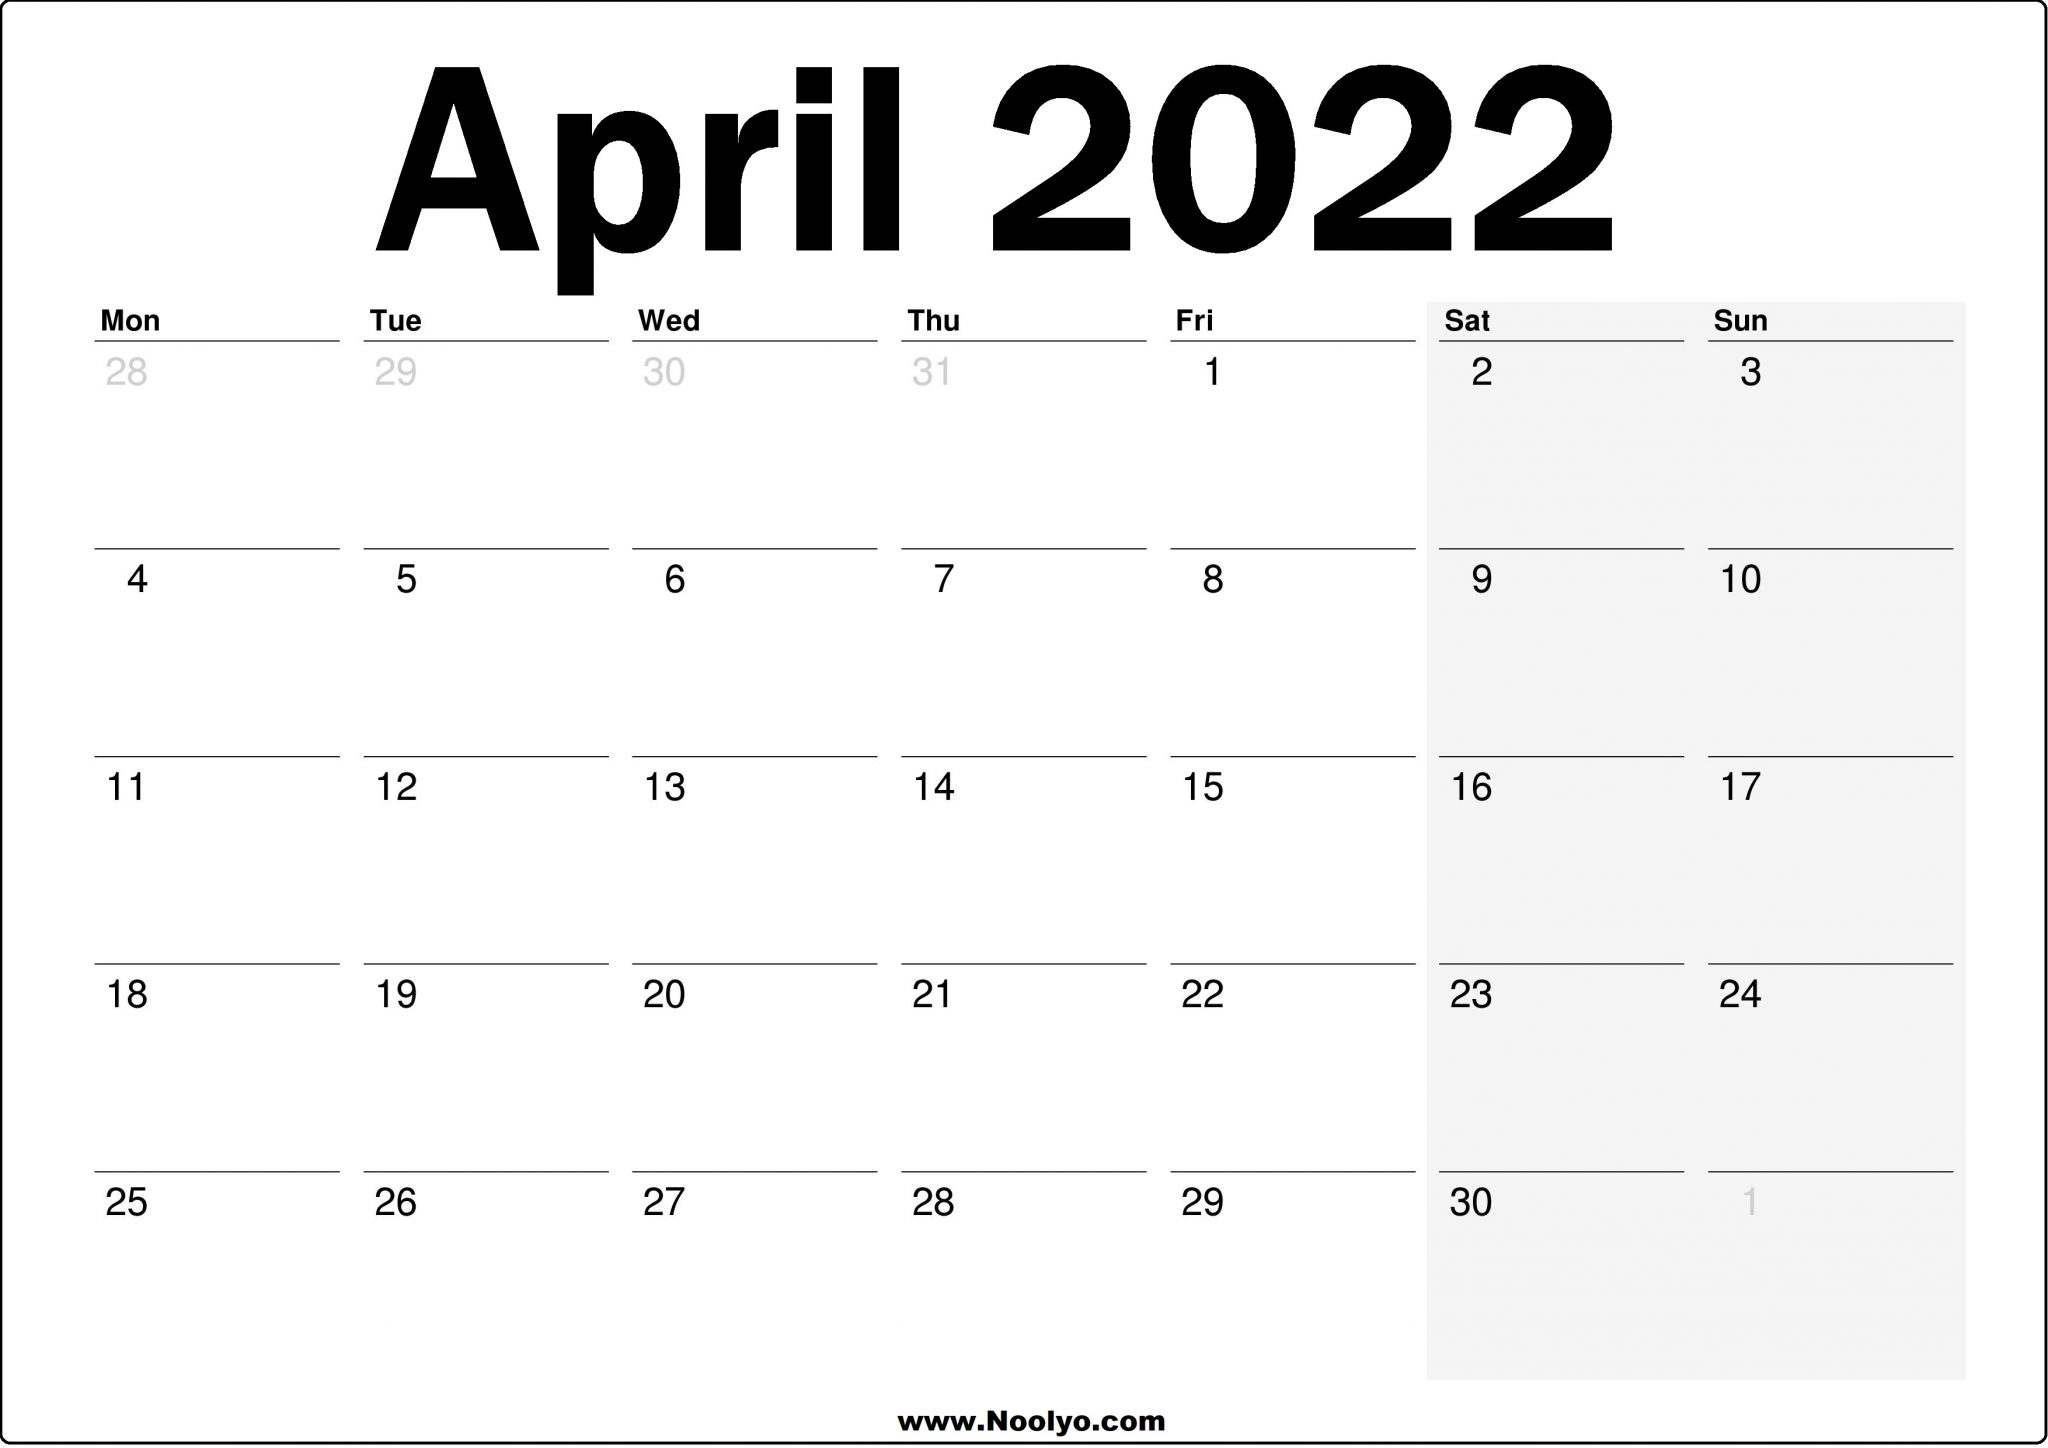 Sometimes it is handy to have a calendar for your current month on your cubical wall. 2022 UK April Calendar Printable - Noolyo.com